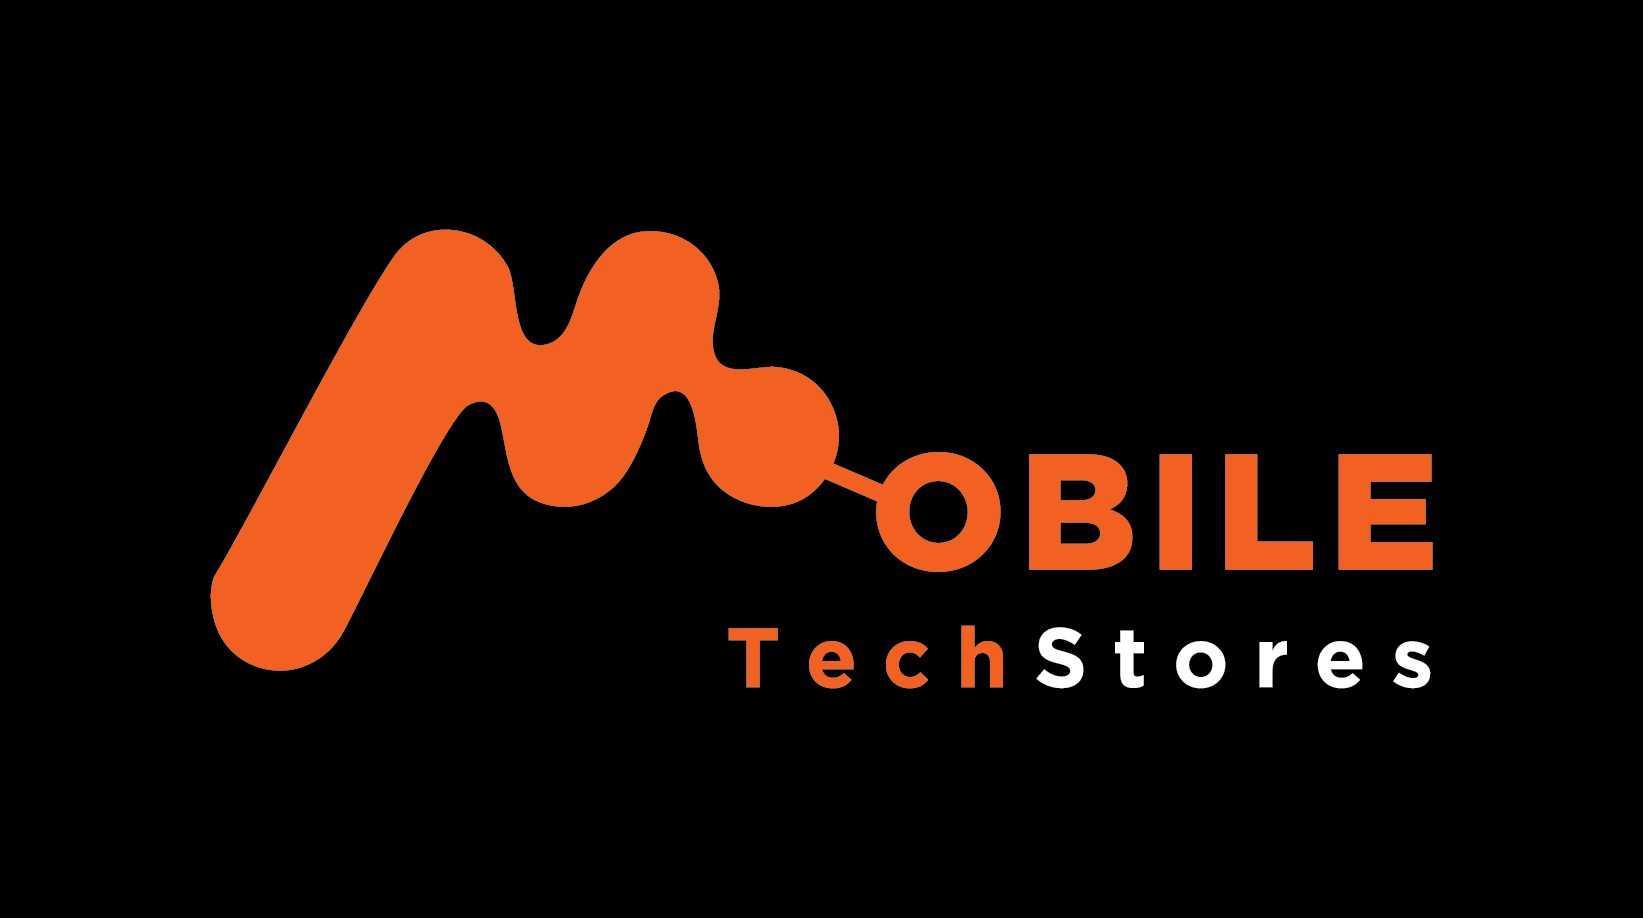 A.R.P.MOBILE TECH STORES LTD